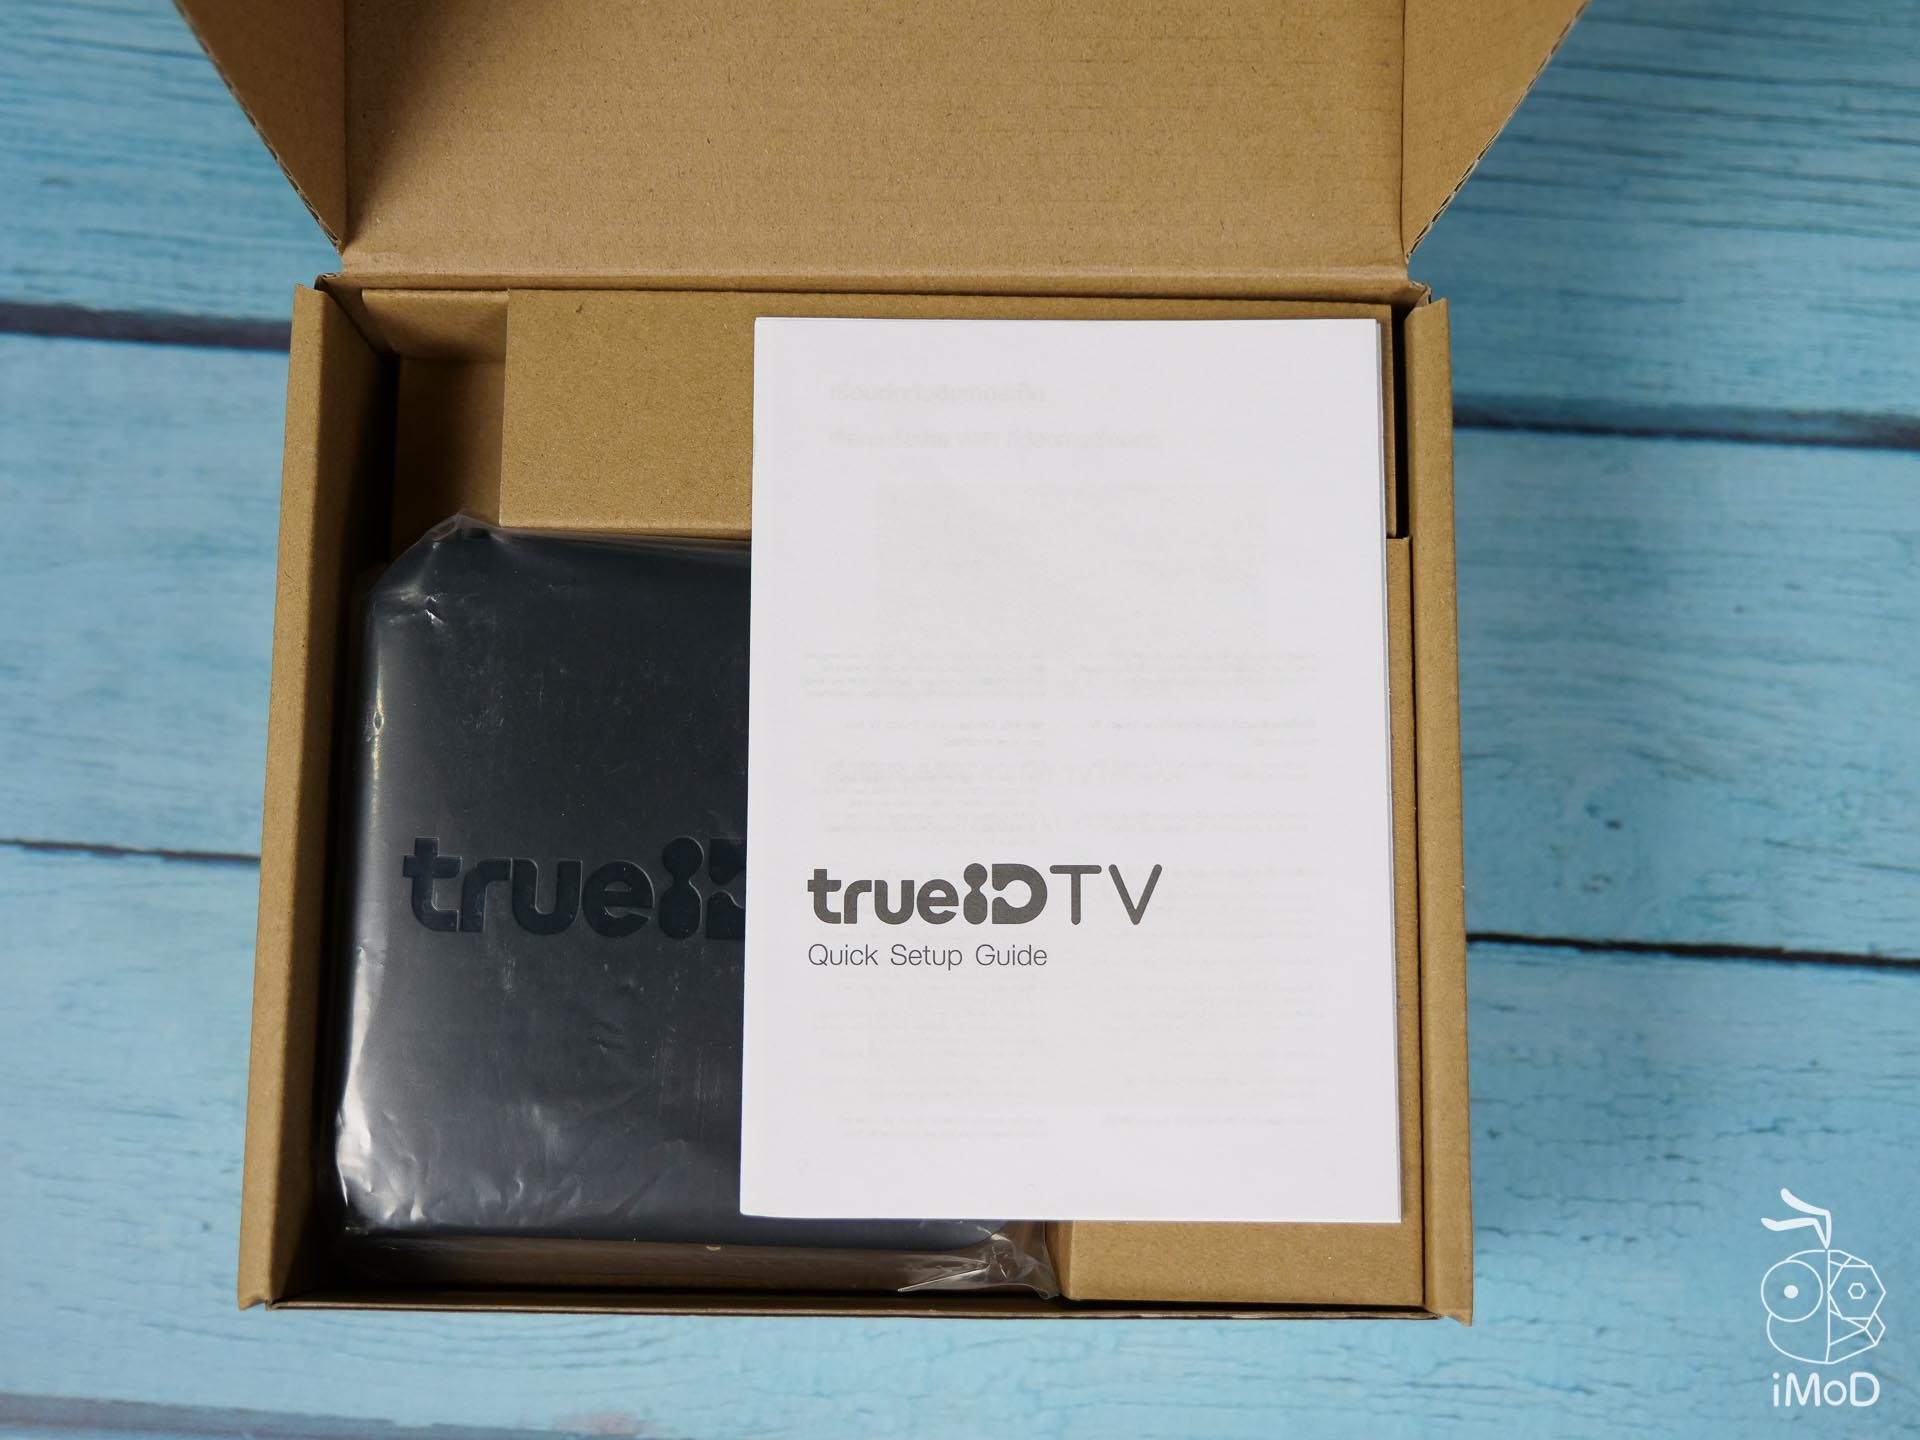 Trueid Tv กล่อง Android Tv รุ่น 2 Review 1222457